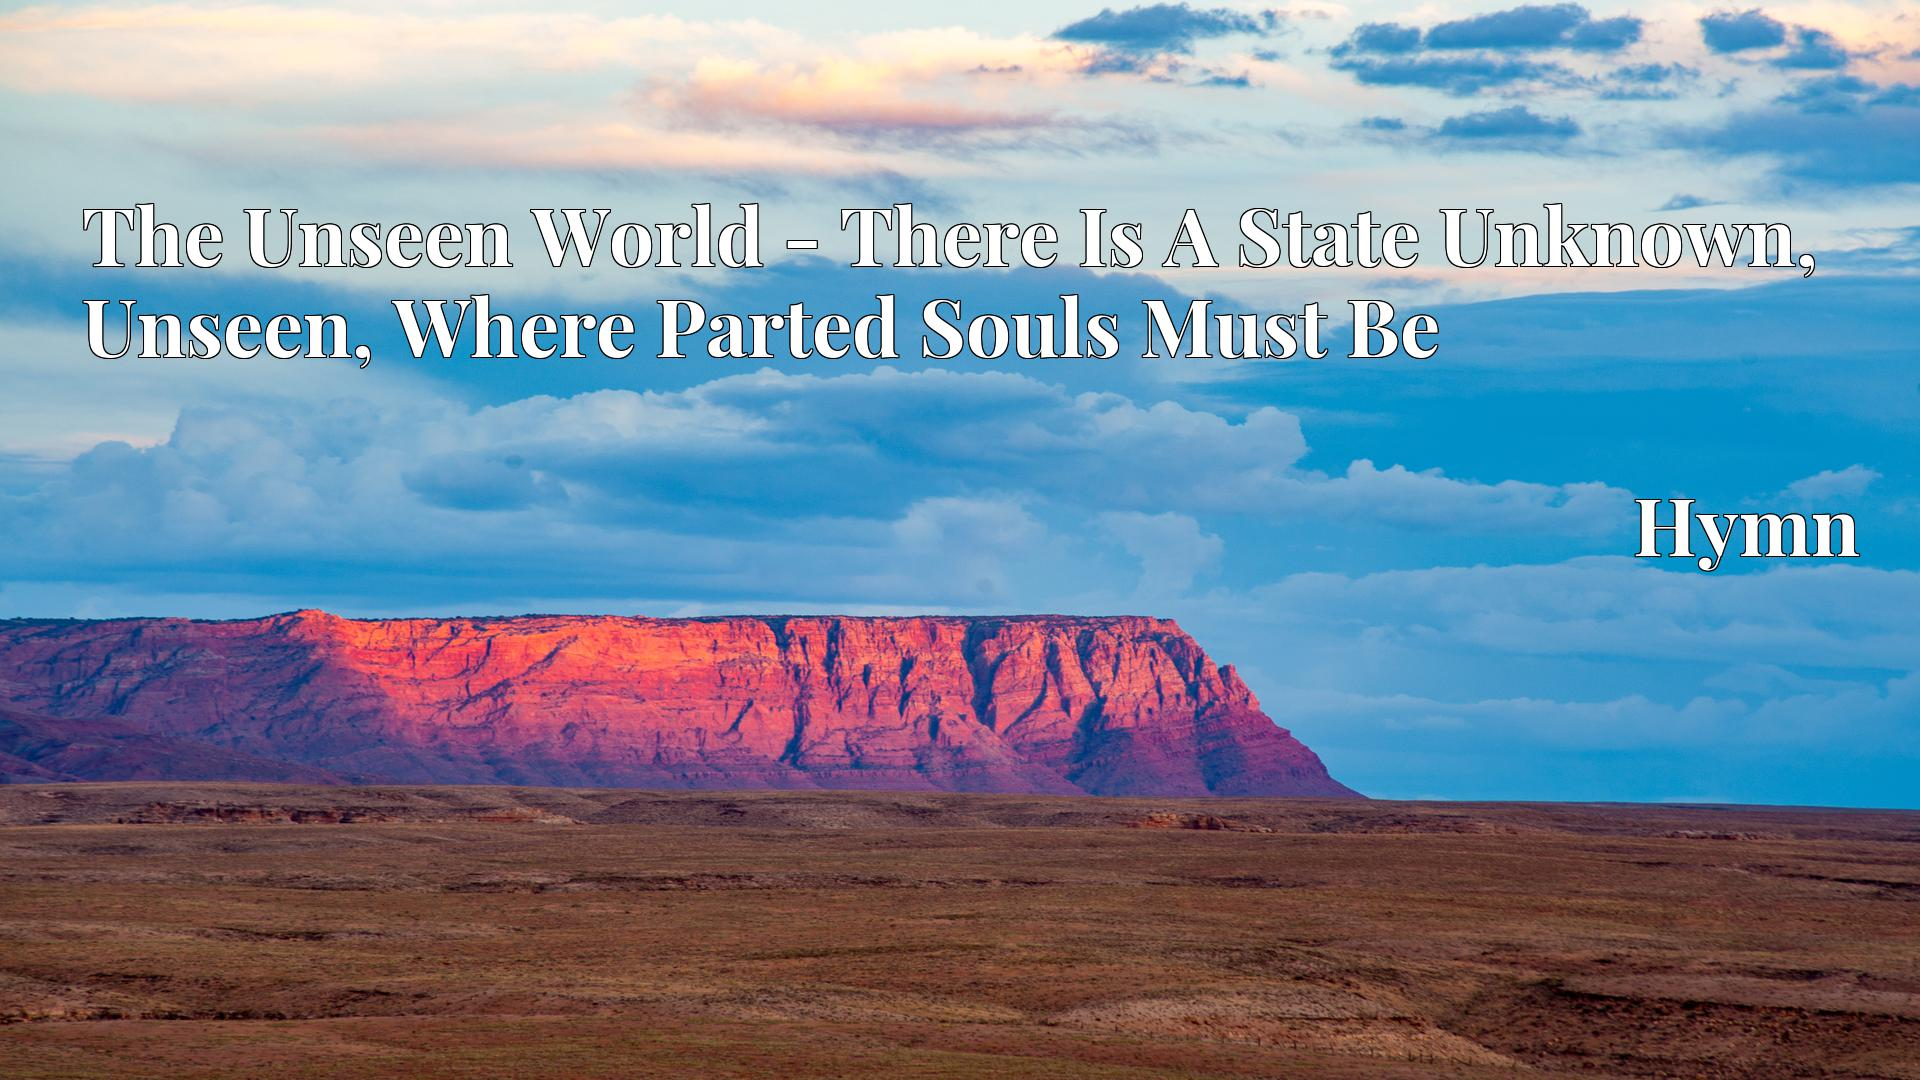 The Unseen World - There Is A State Unknown, Unseen, Where Parted Souls Must Be - Hymn